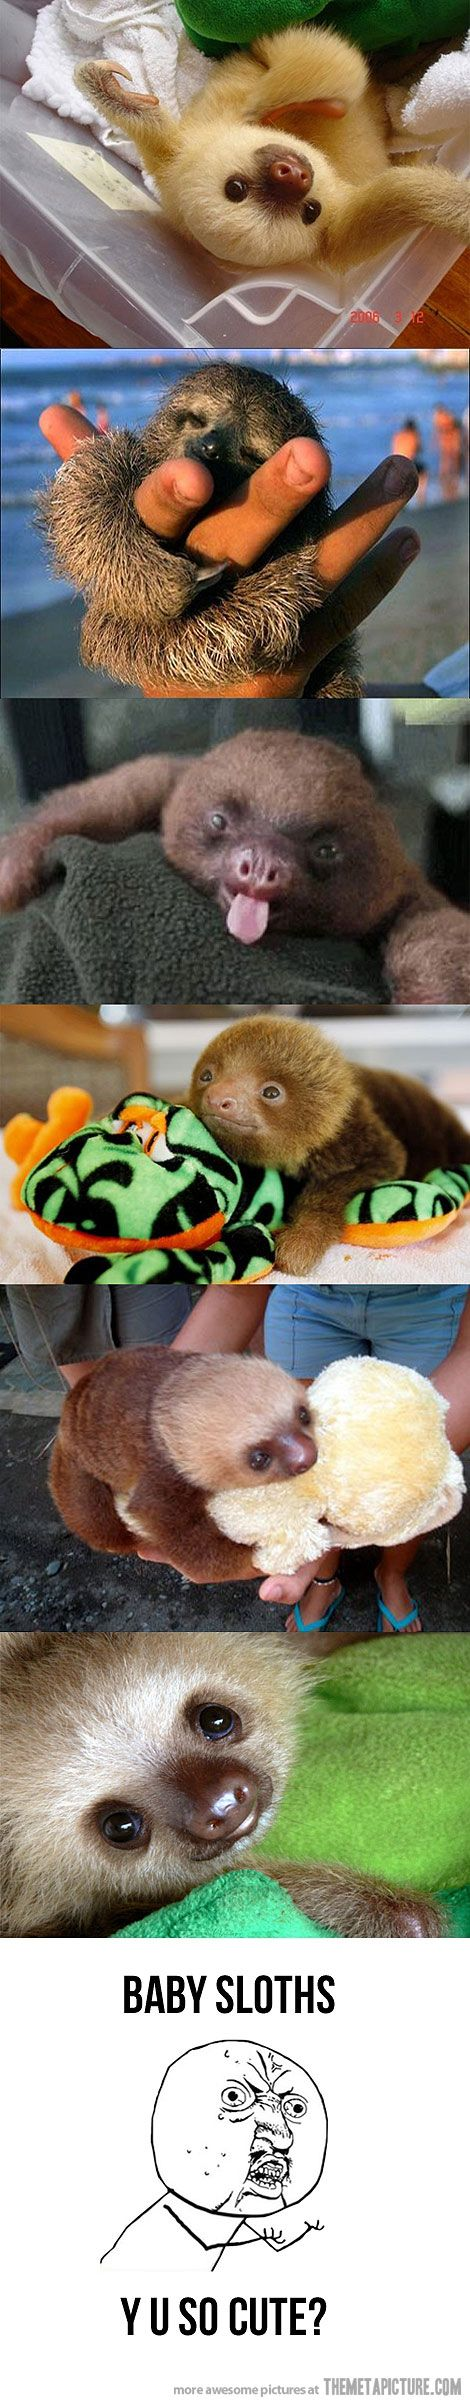 Baby sloths - Me love you so much.